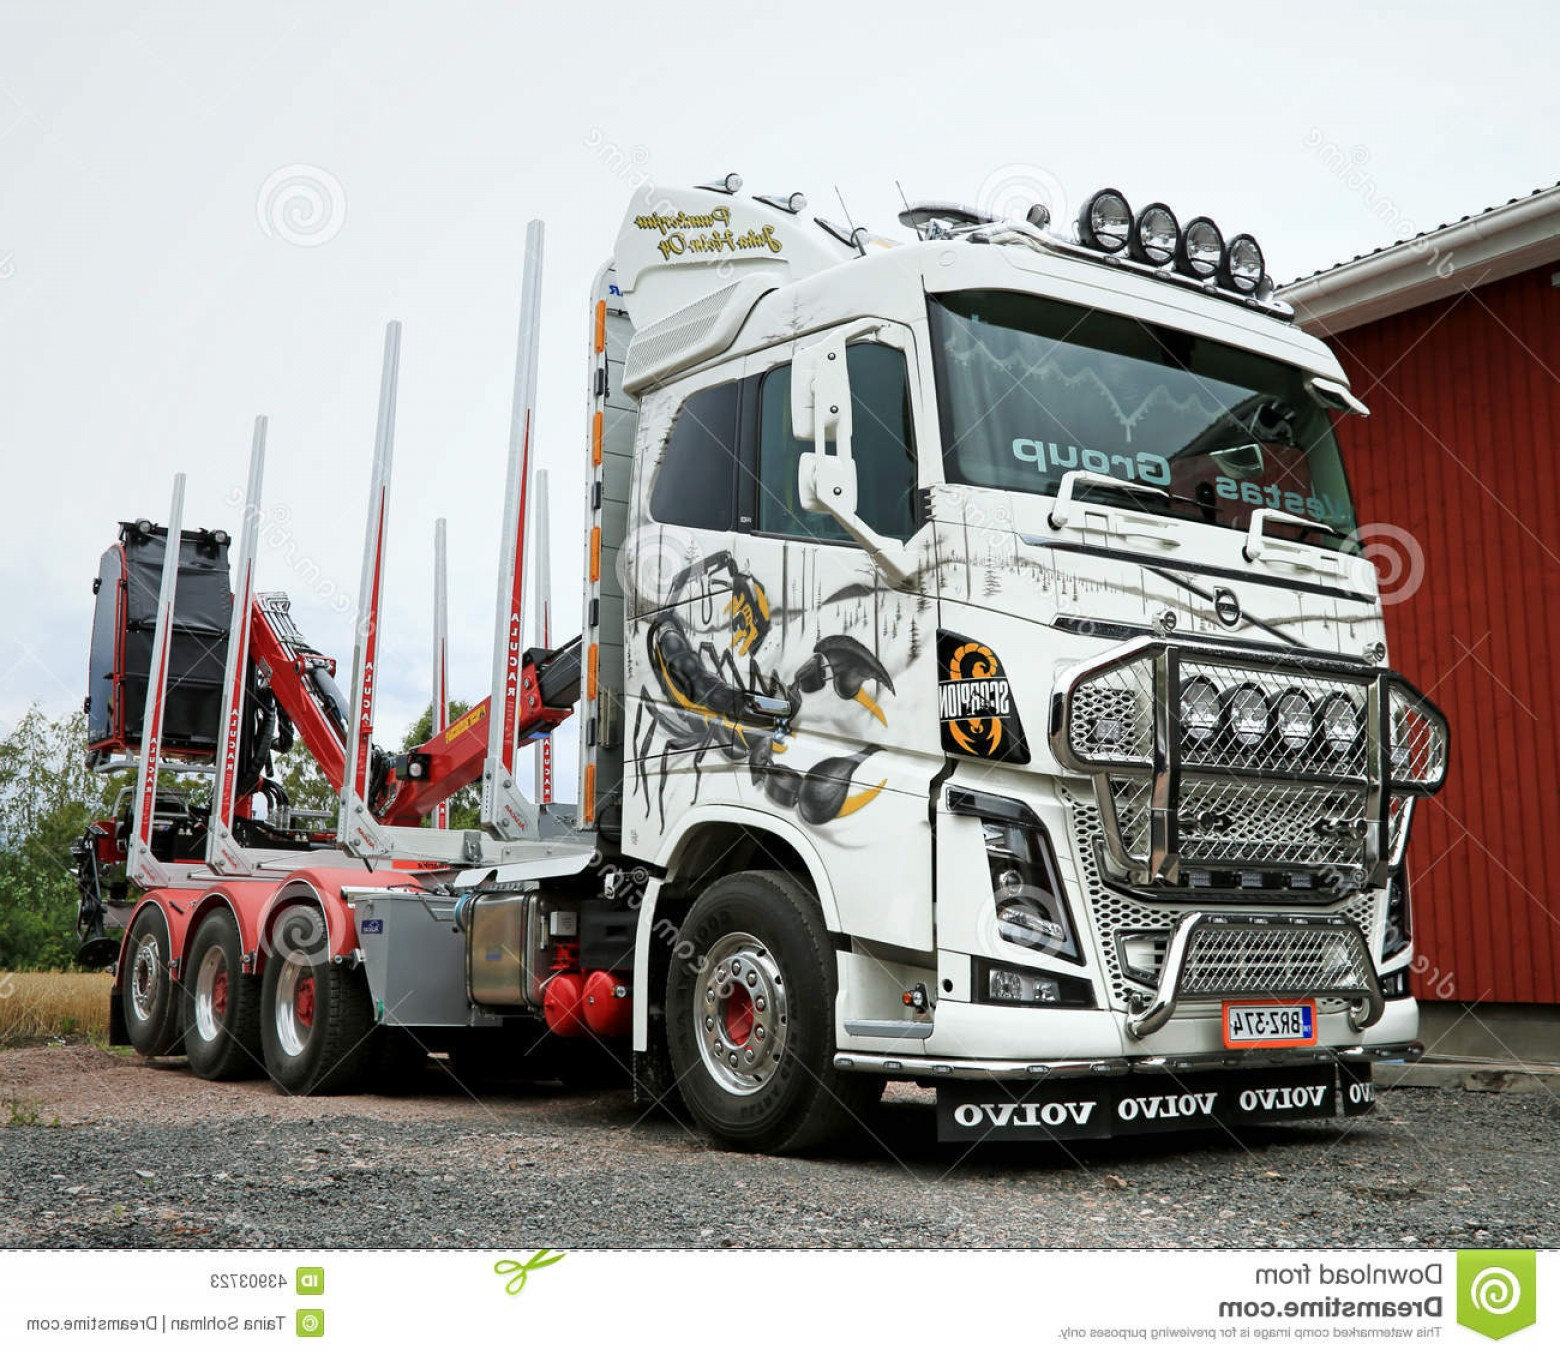 Volvo FH Vector: Editorial Stock Photo Volvo Fh Logging Truck Ponsse Scorpion Koski Tl Finland August Airbrush Paintings Harvester Wins Fennia Image